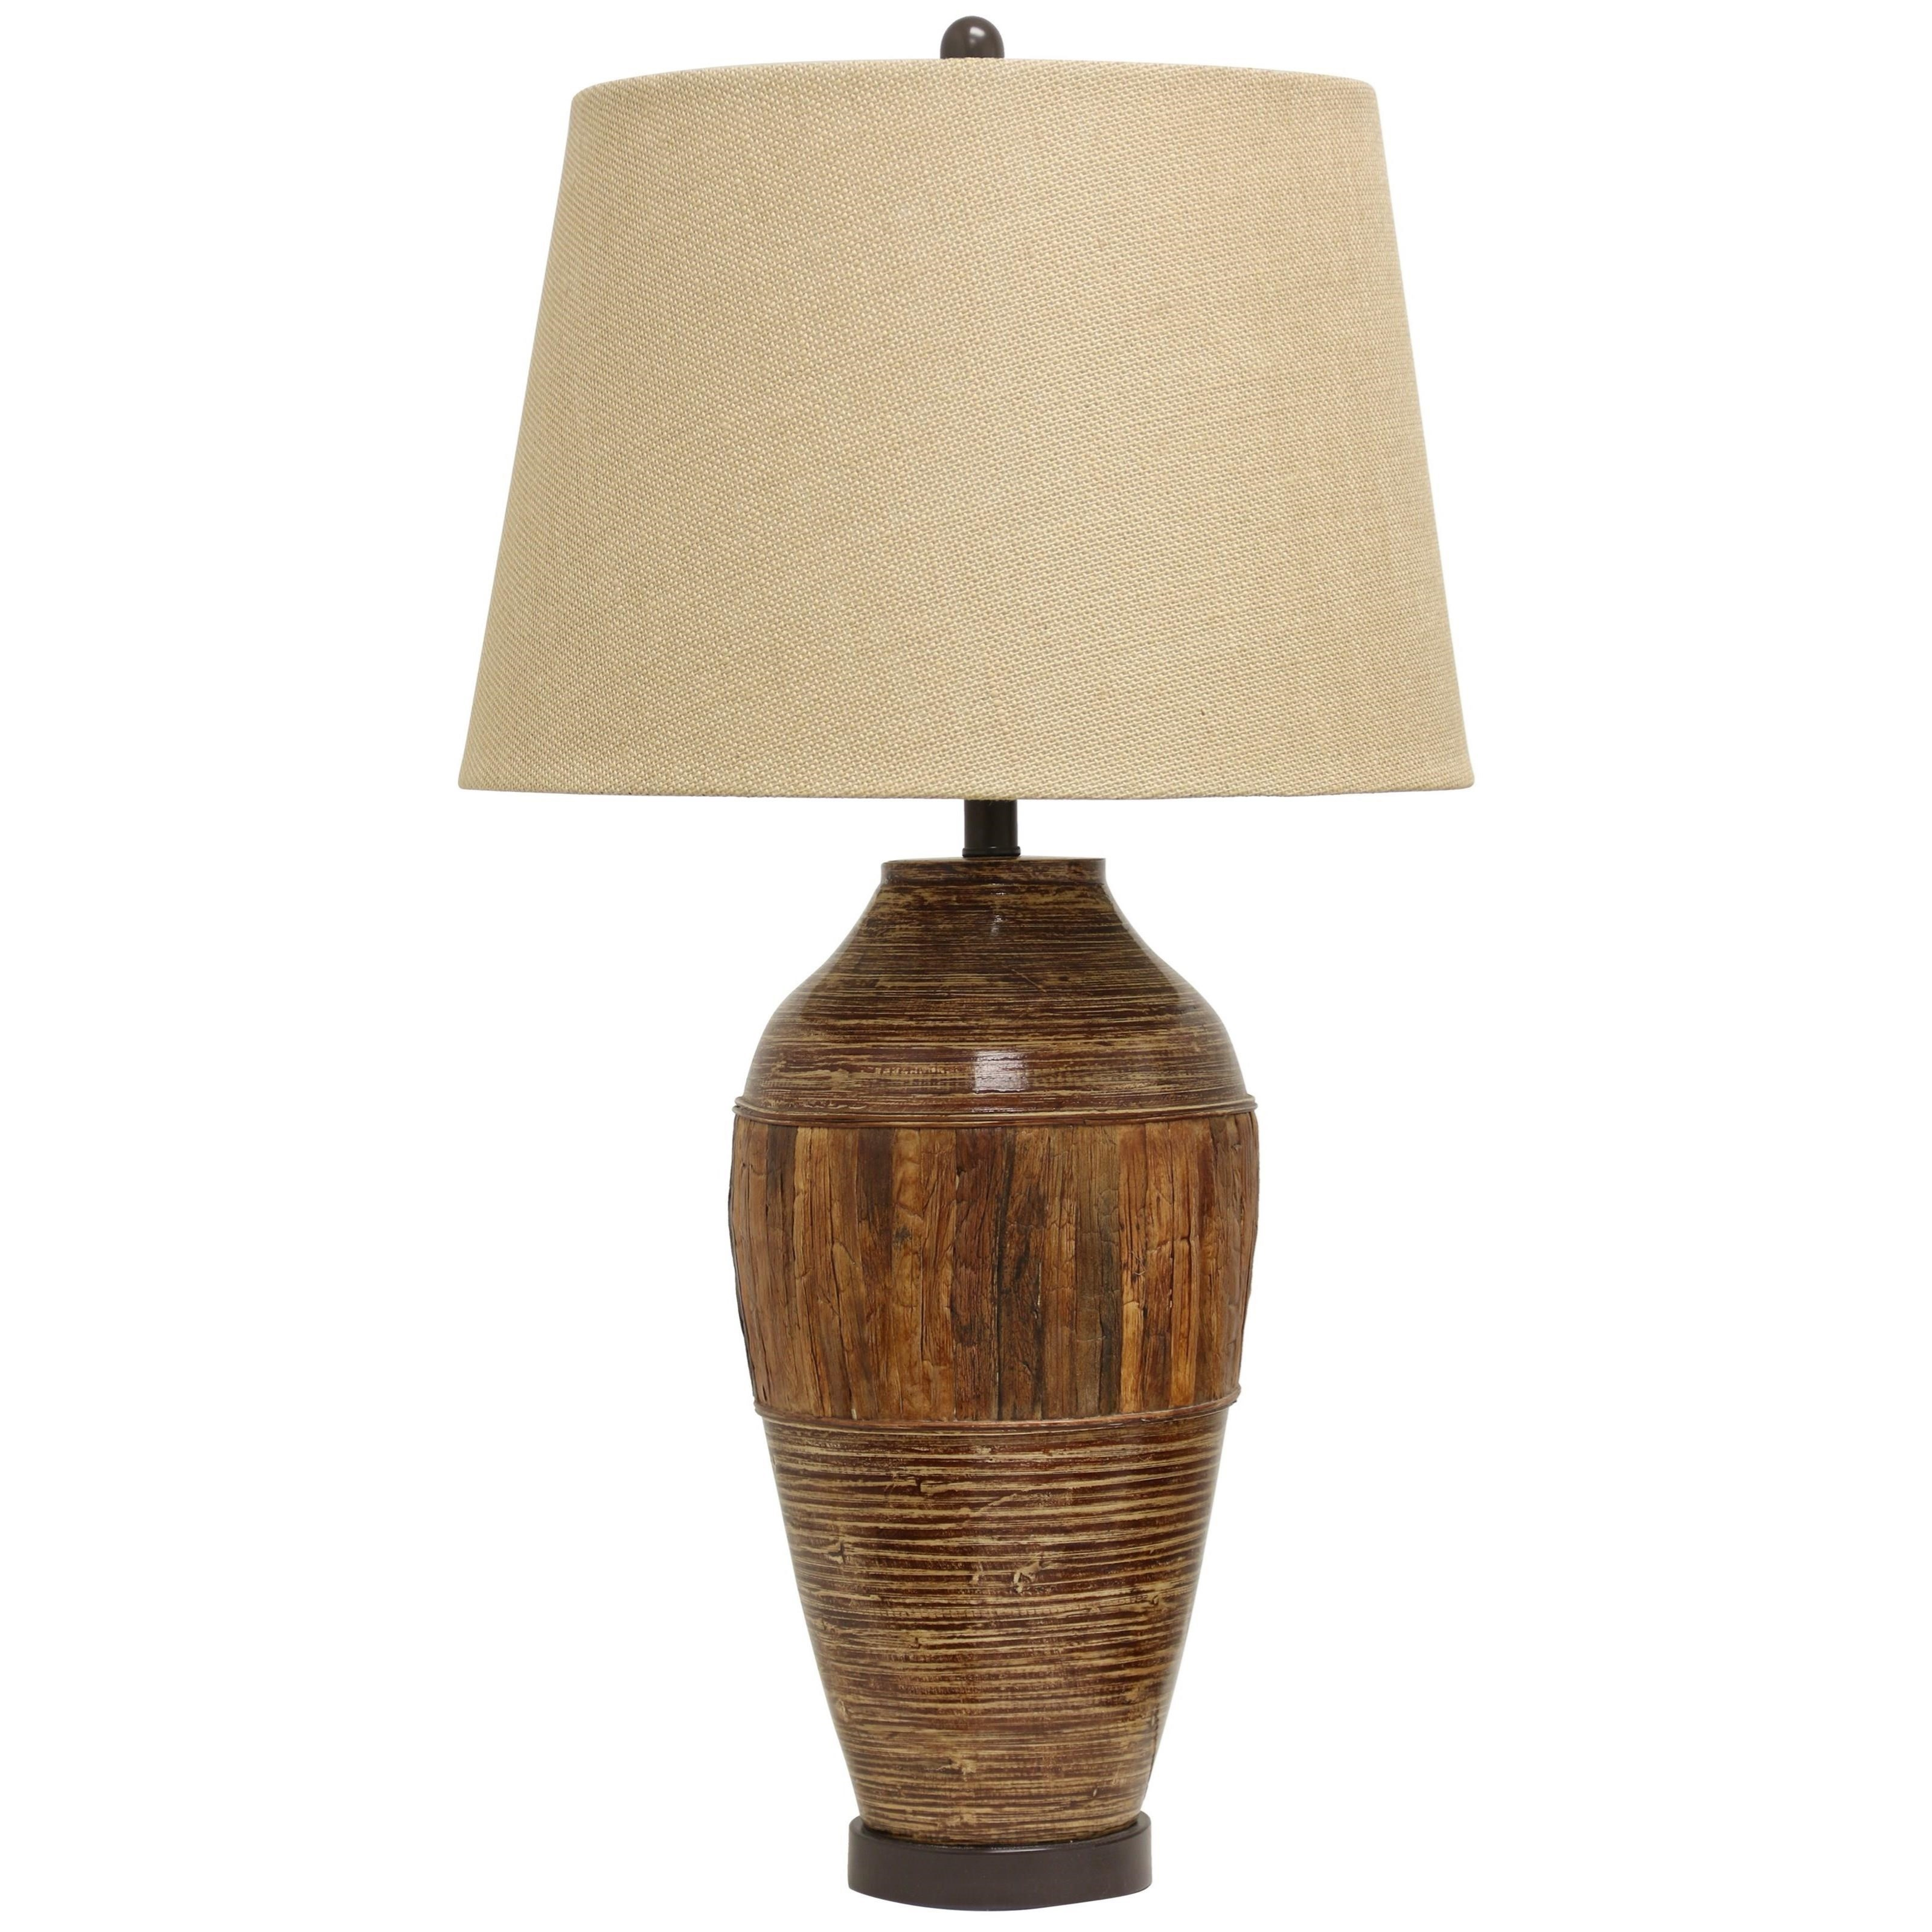 Lamps Bamboo and Water Hyacinth Table Lamp by StyleCraft at Alison Craig Home Furnishings